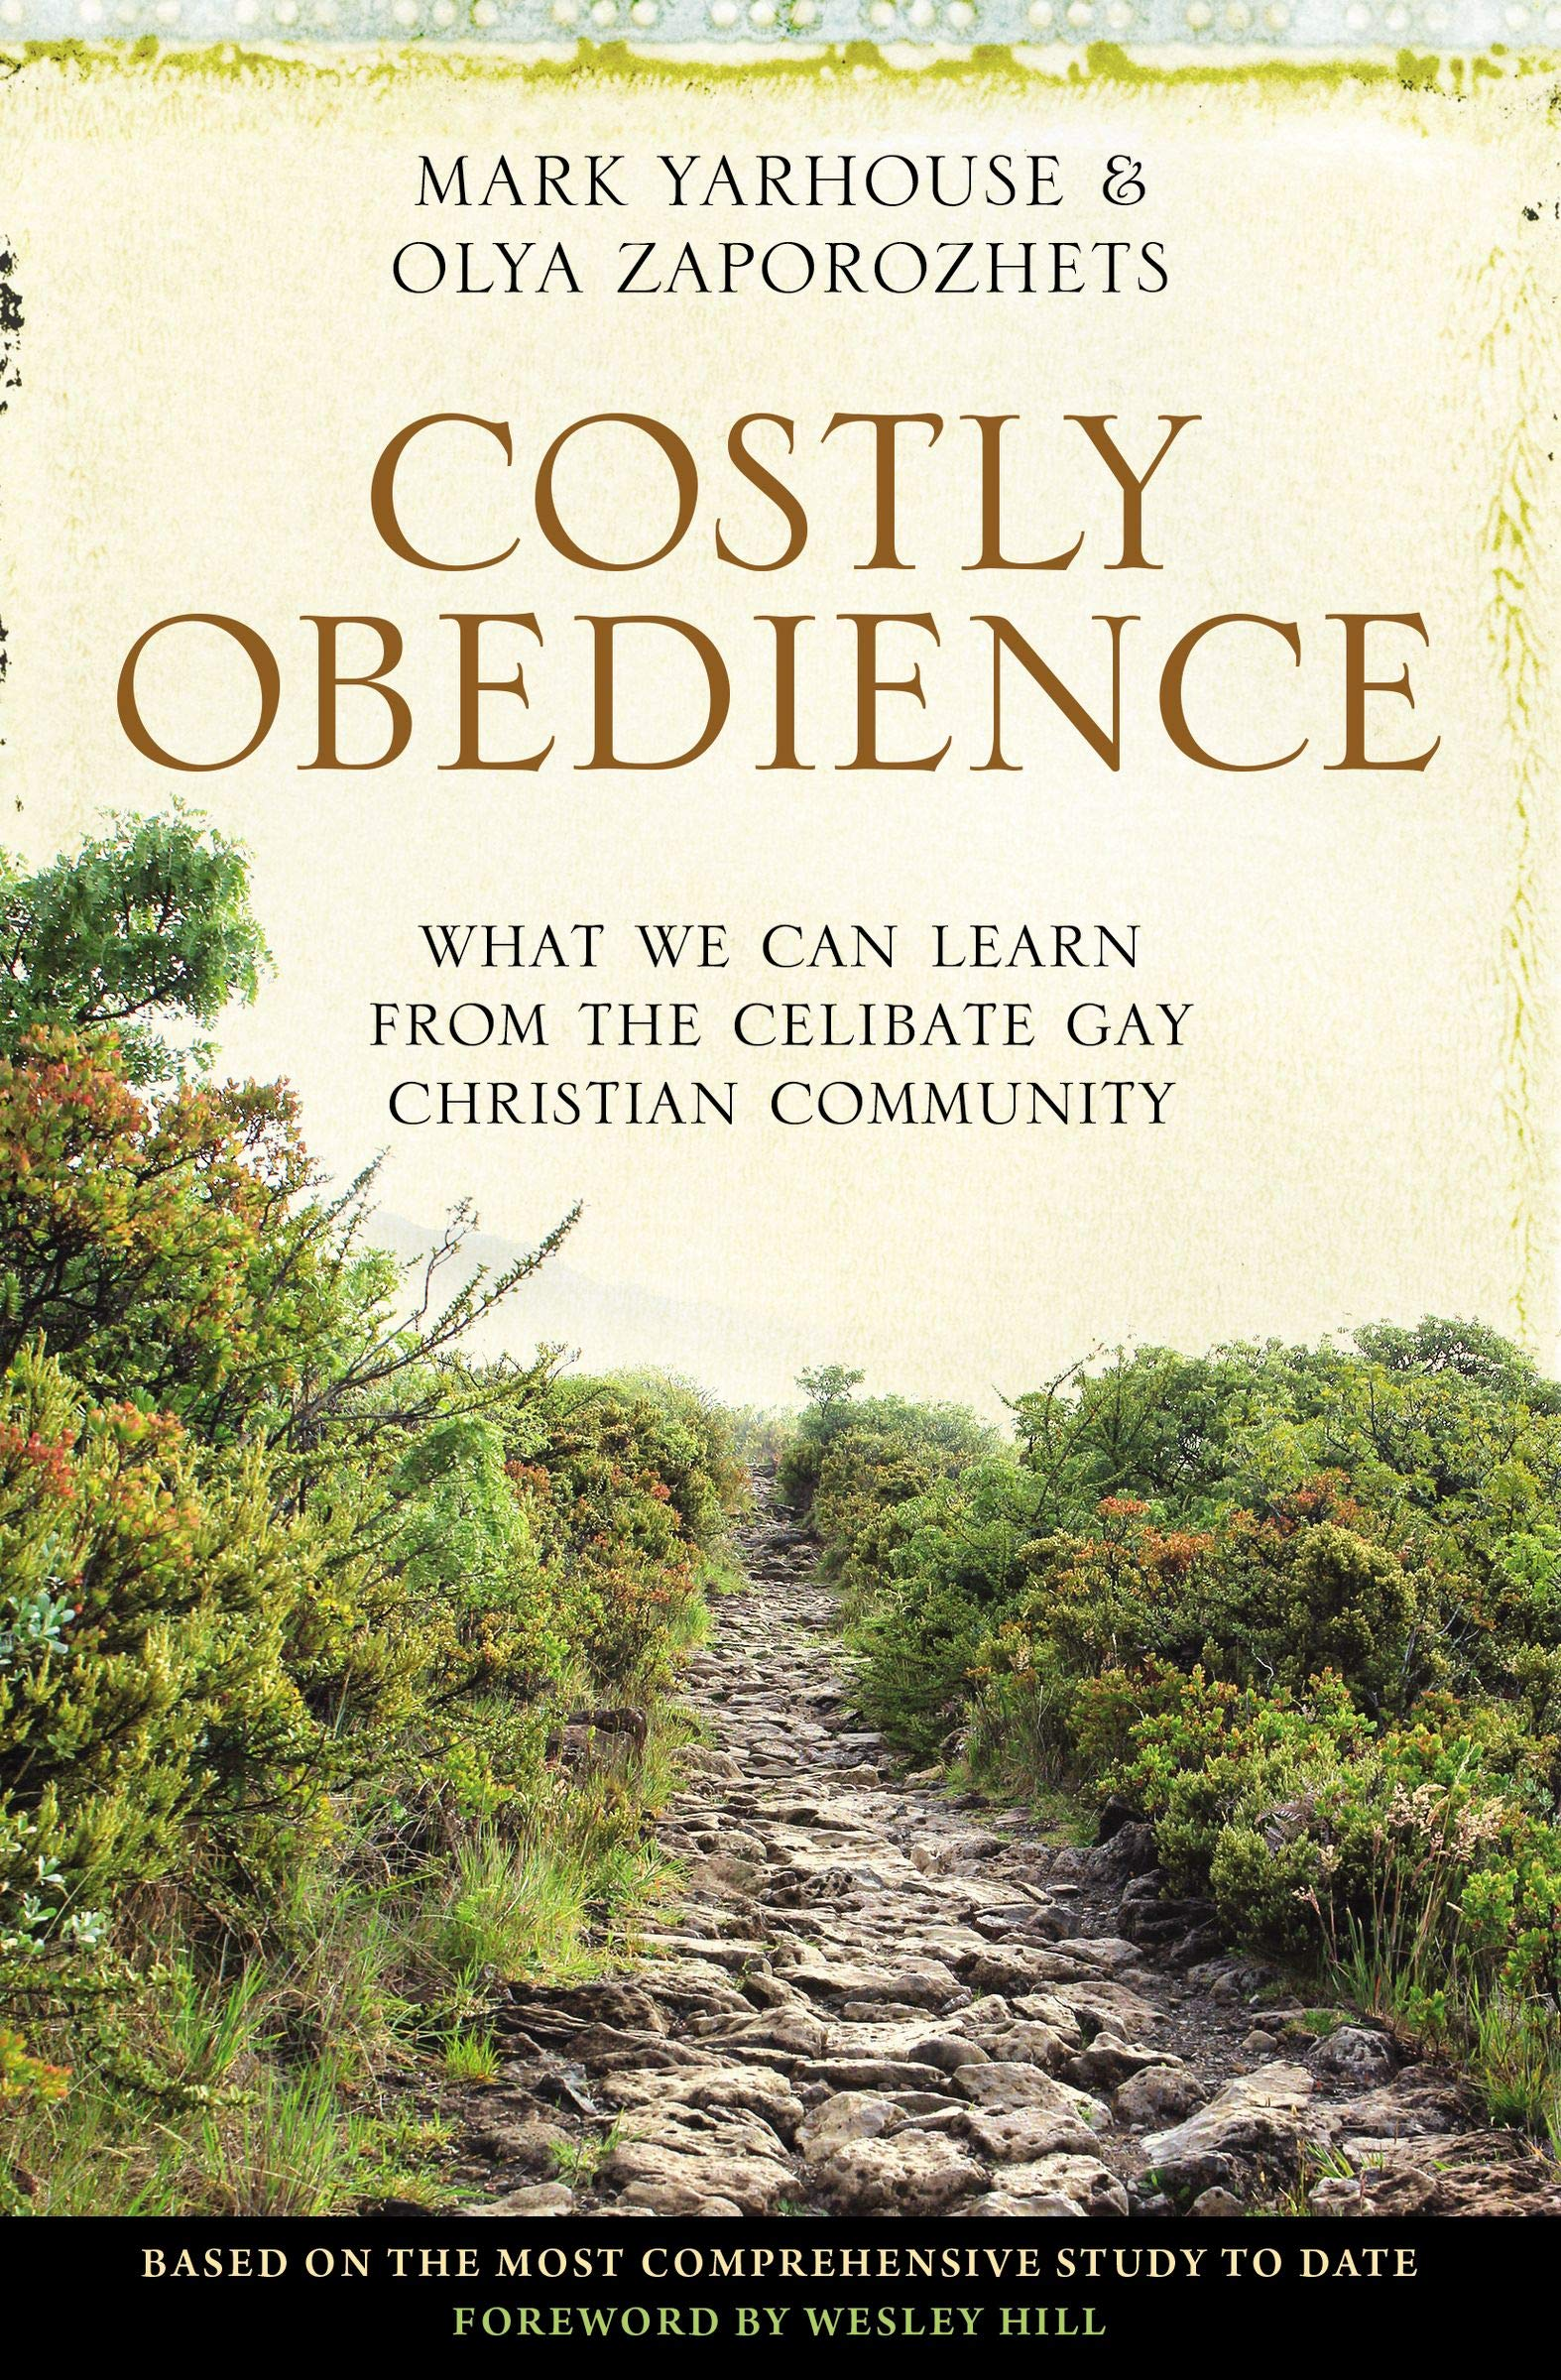 costly obedience.jpg